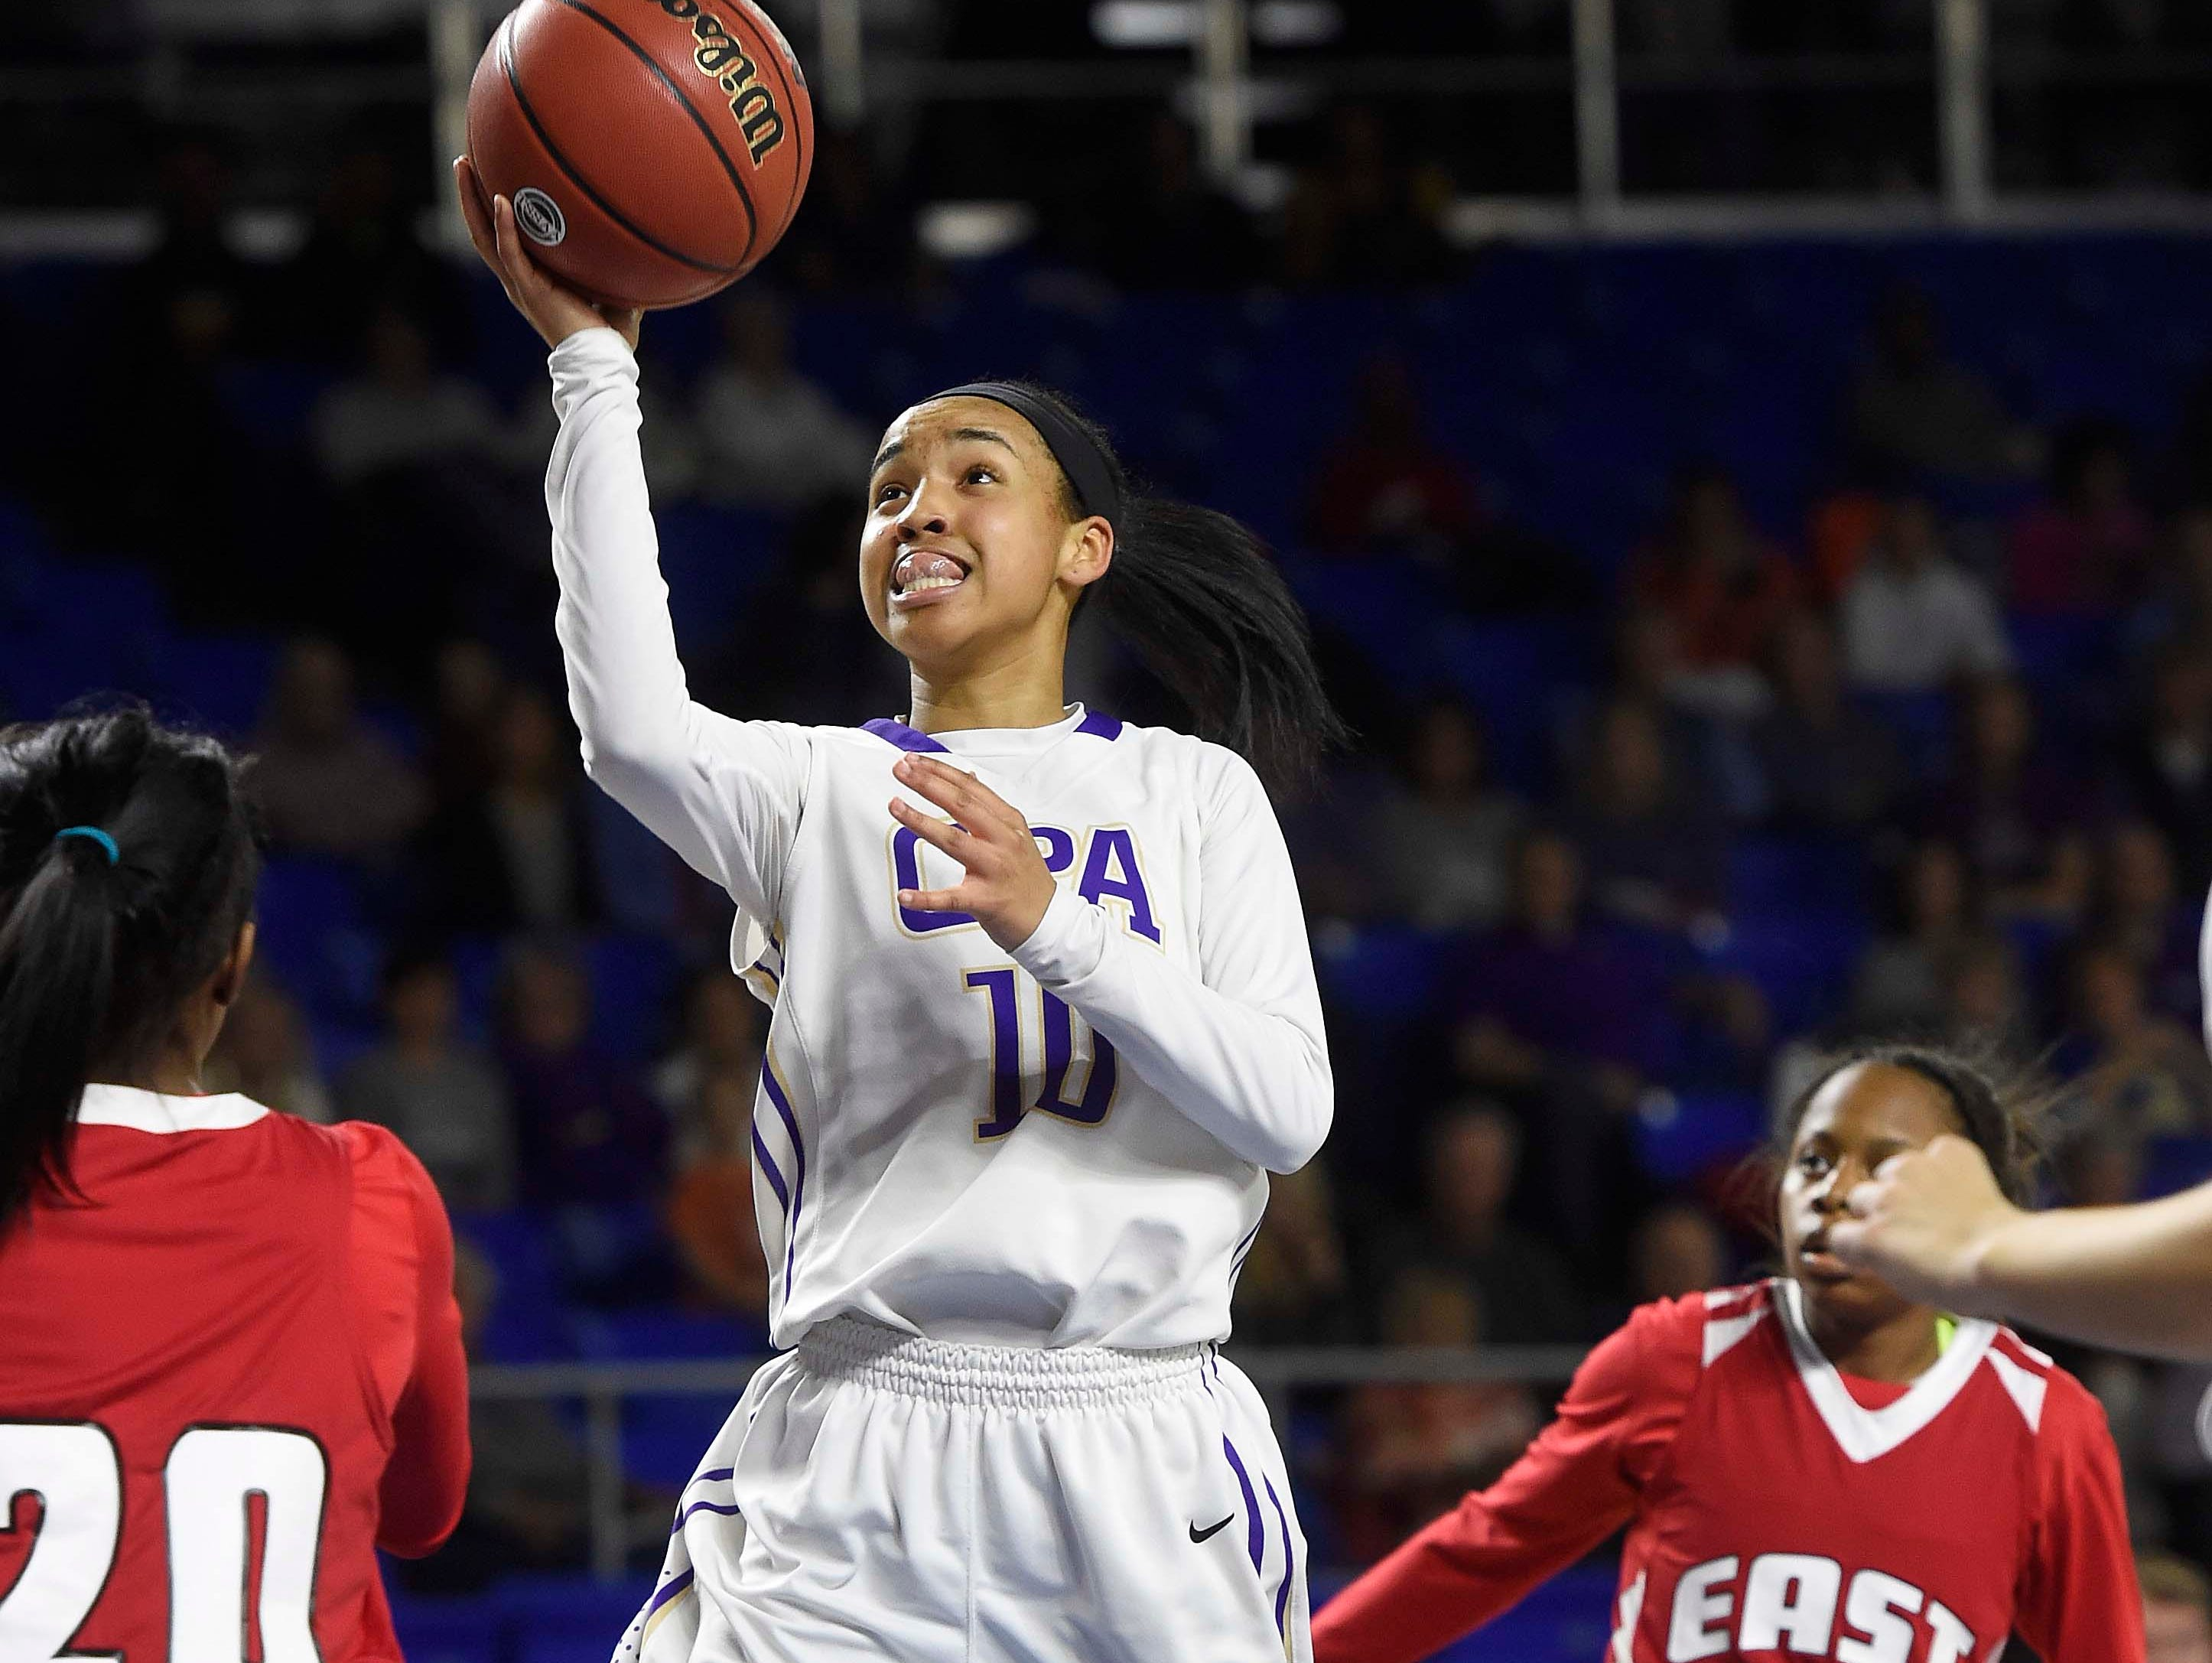 CPA's Kenedi Hambrick (10) drives the lane as East Nashville leads 25-24 at the half n the Division I Class AA Girl's basketball tournament at the Murphy Center on MTSU's campus March 10, 2016 in Murfreesboro, Tenn.